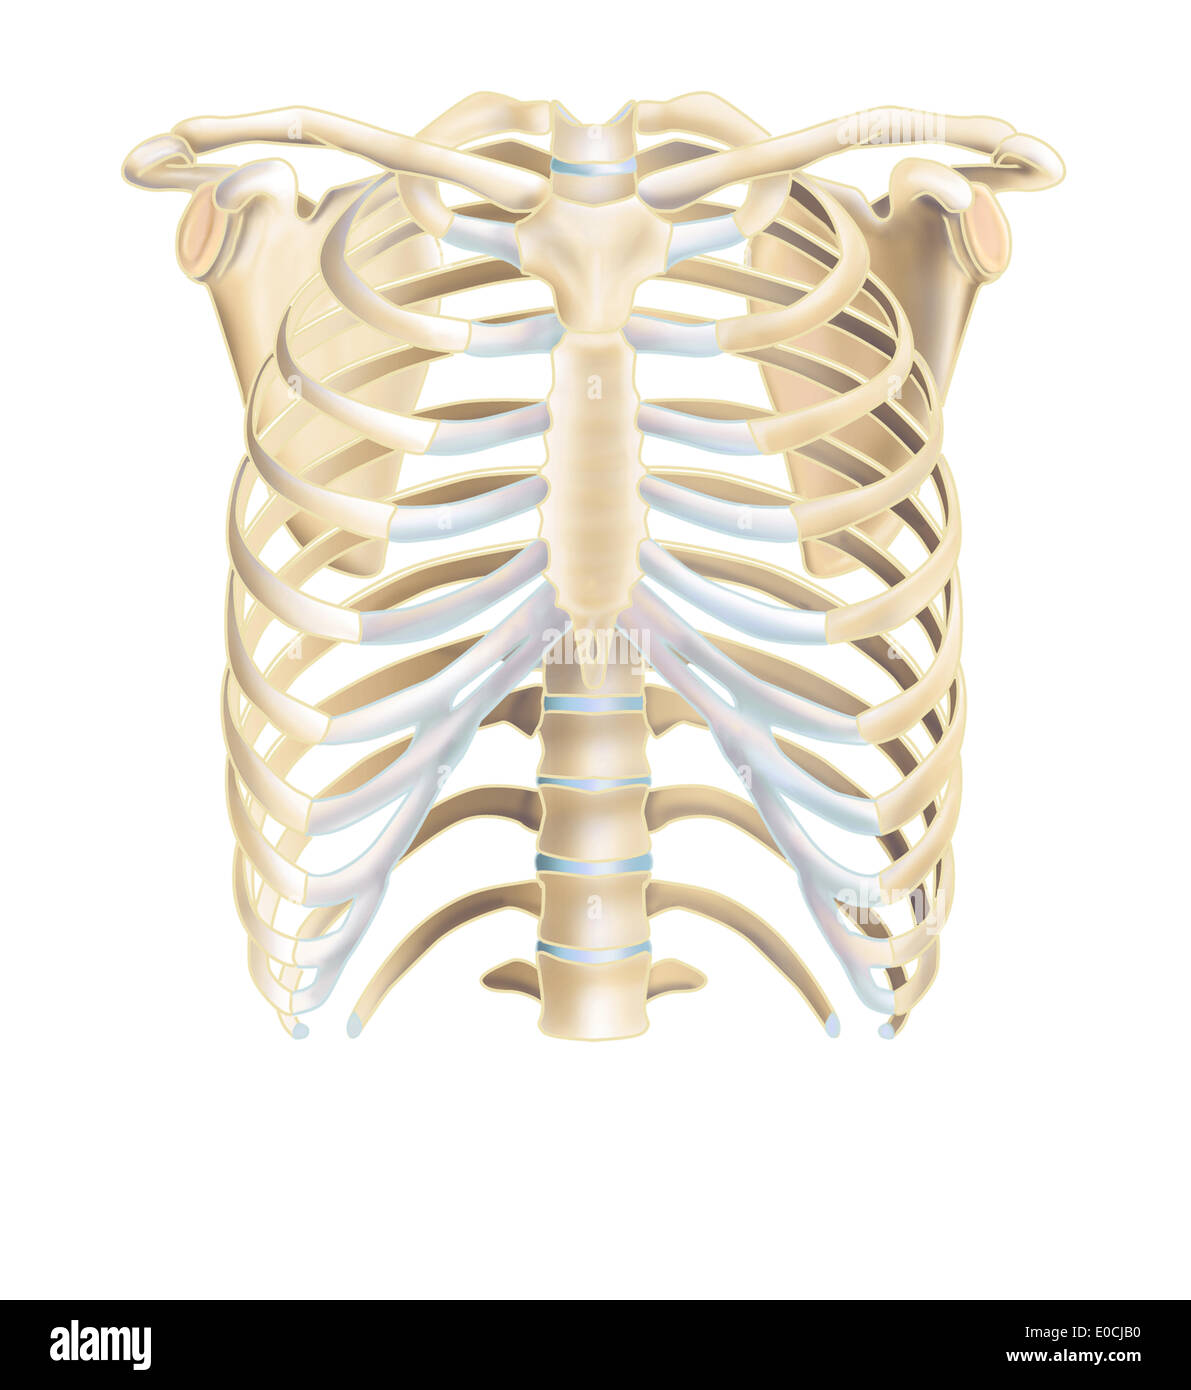 Xiphoid Process Stock Photos Xiphoid Process Stock Images Alamy